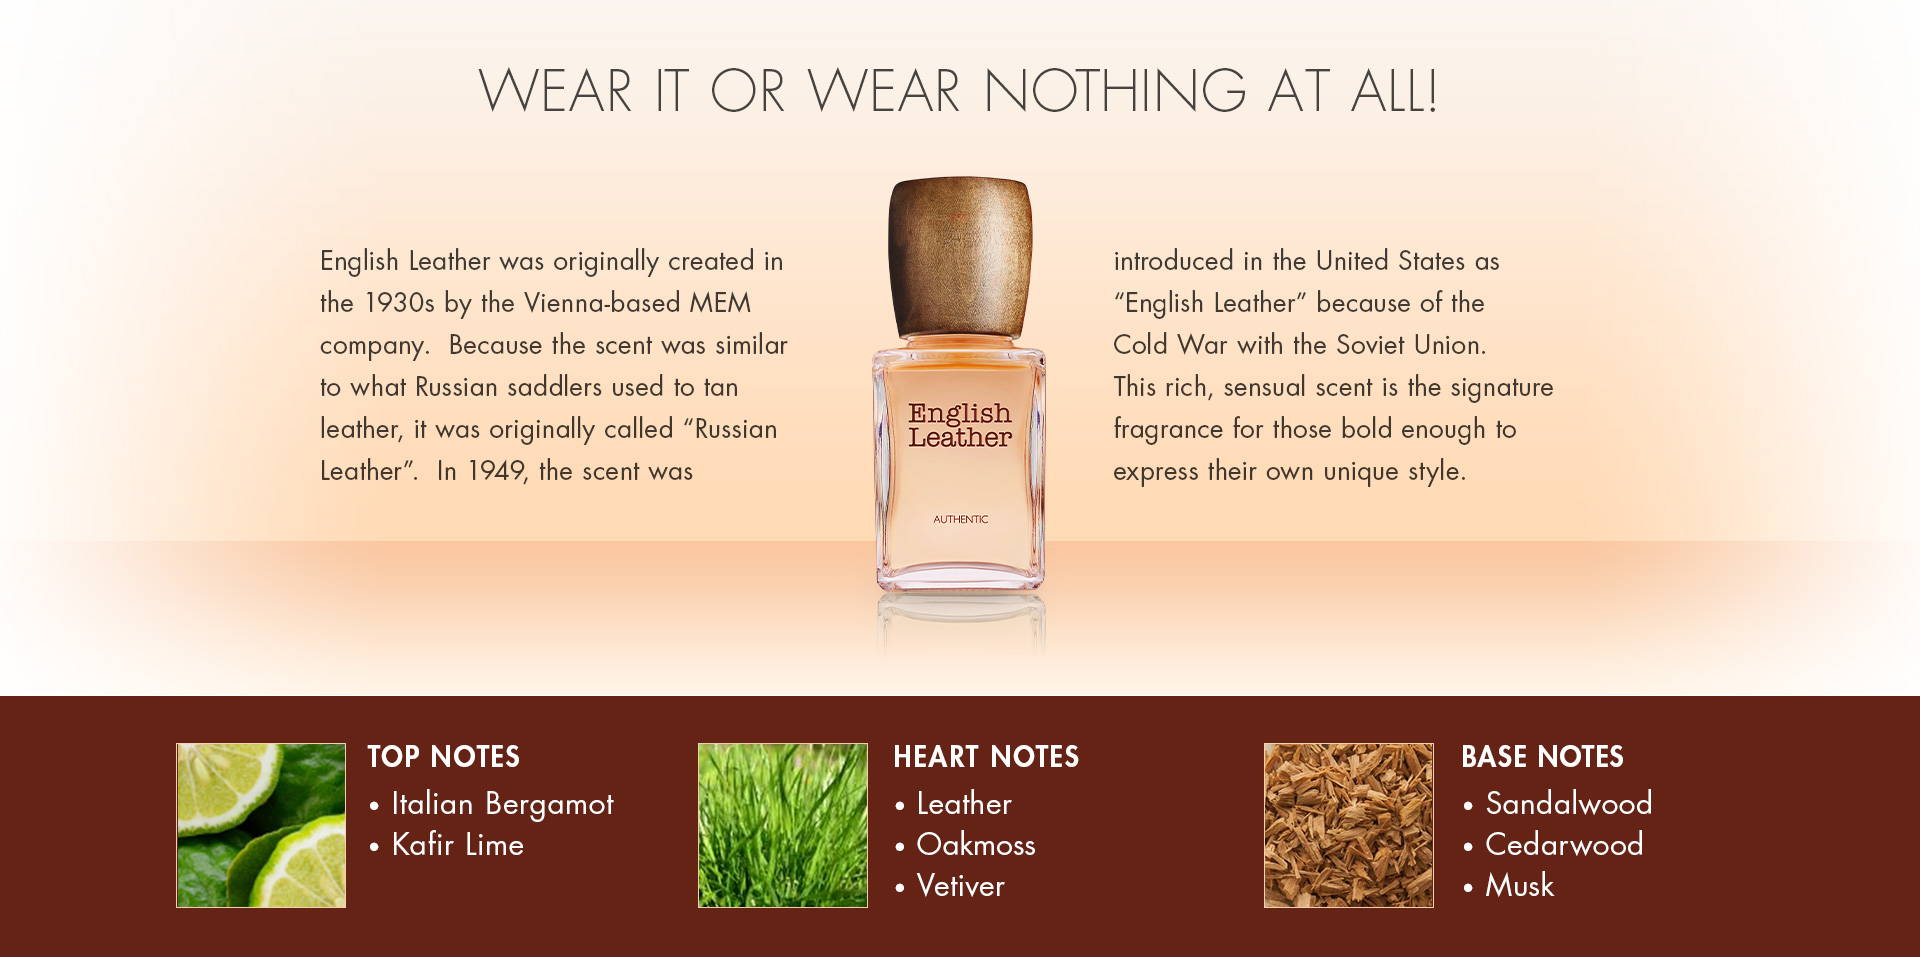 "Weart it or Wear Nothing at All! English Leather was originally created in the 1930's by the Vienna-based MEM company.  Because the scent was similar to what Russian saddlers used to tan leather, it was originally called ""Russian Leather"".  In 1949, the scent was introduced in the U.S. as ""English Leather"" because of the Cold War with Russia. This rich, sensual scent is the signature fragrance for those bold enough to express their own unique style. TOP NOTES • Italian Bergamot• Kafir Lime. HEART NOTES • Leather• Oakmoss• Vetiver. BASE NOTES • Sandalwood• Cedarwood• Musk."